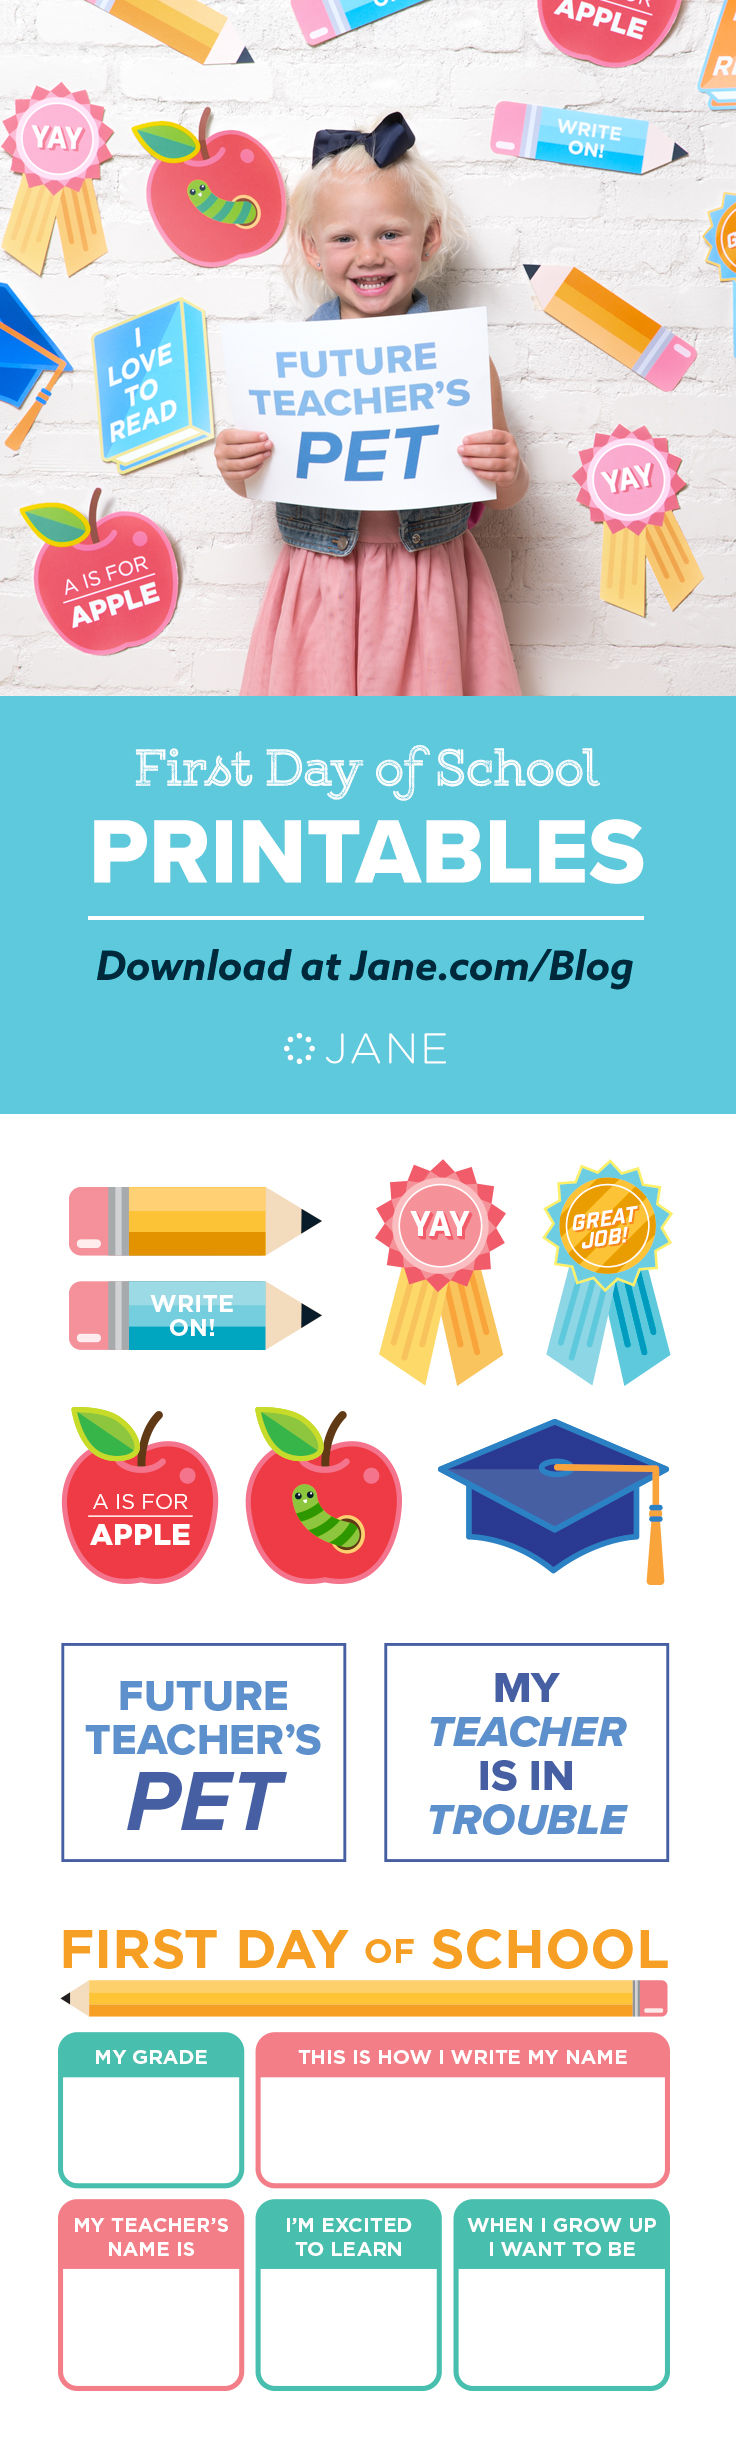 You've been preparing for this moment for weeks—you've been back to school shopping, helped them picked out their newoutfits, and now it's finally here: the first day of school! Download these super cute First Day of School Printables